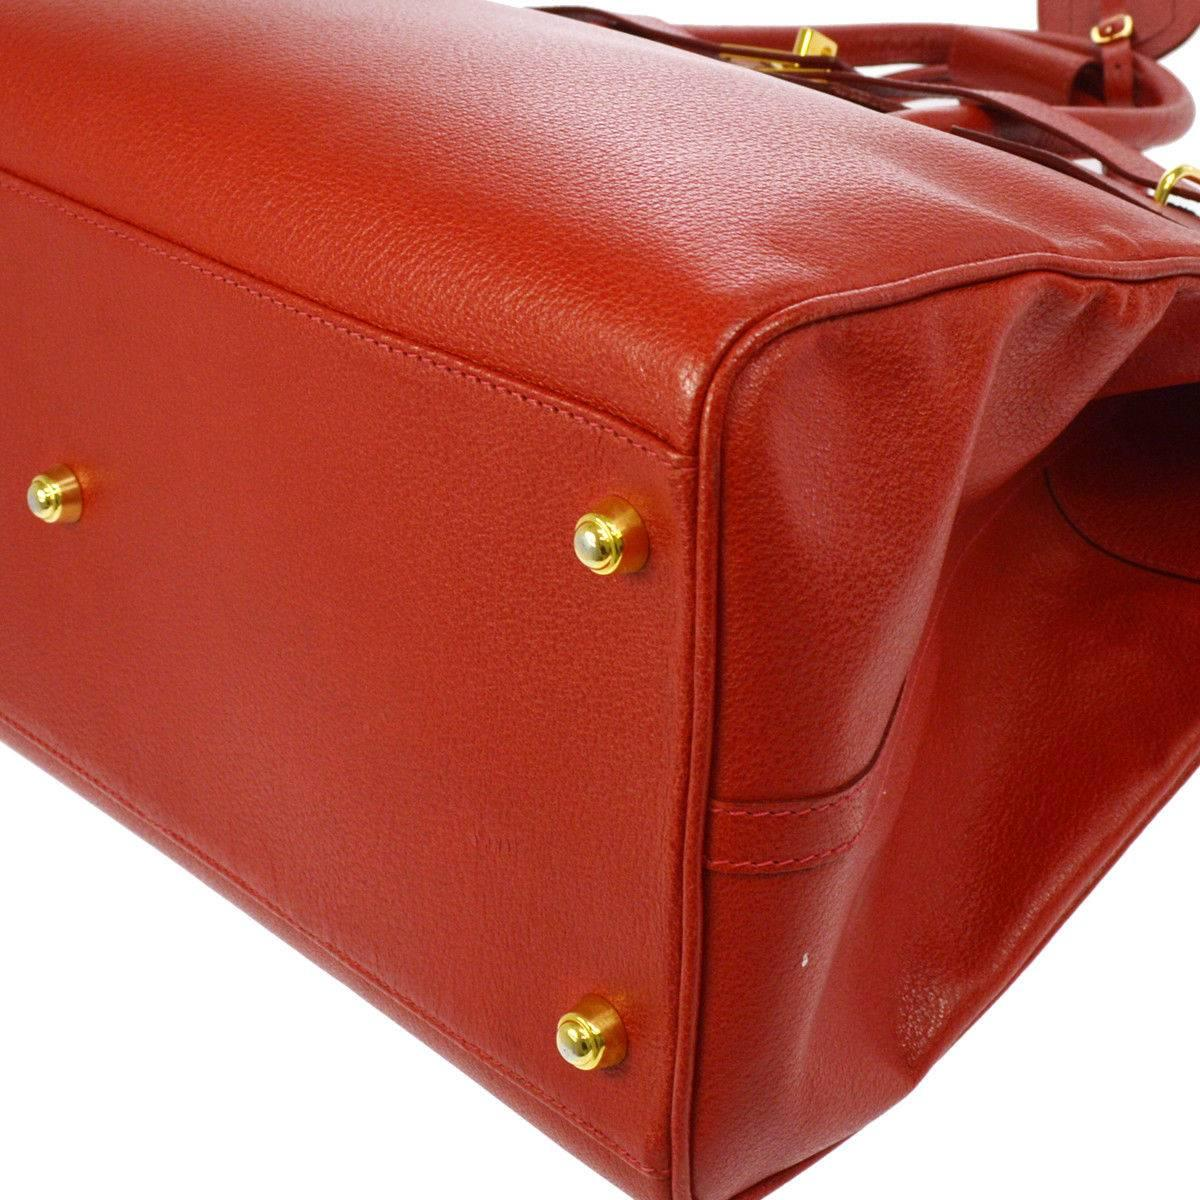 Gucci Red Leather Large Carryall Birkin Style Travel Weekender Top Handle Bag B1bZPJzrS